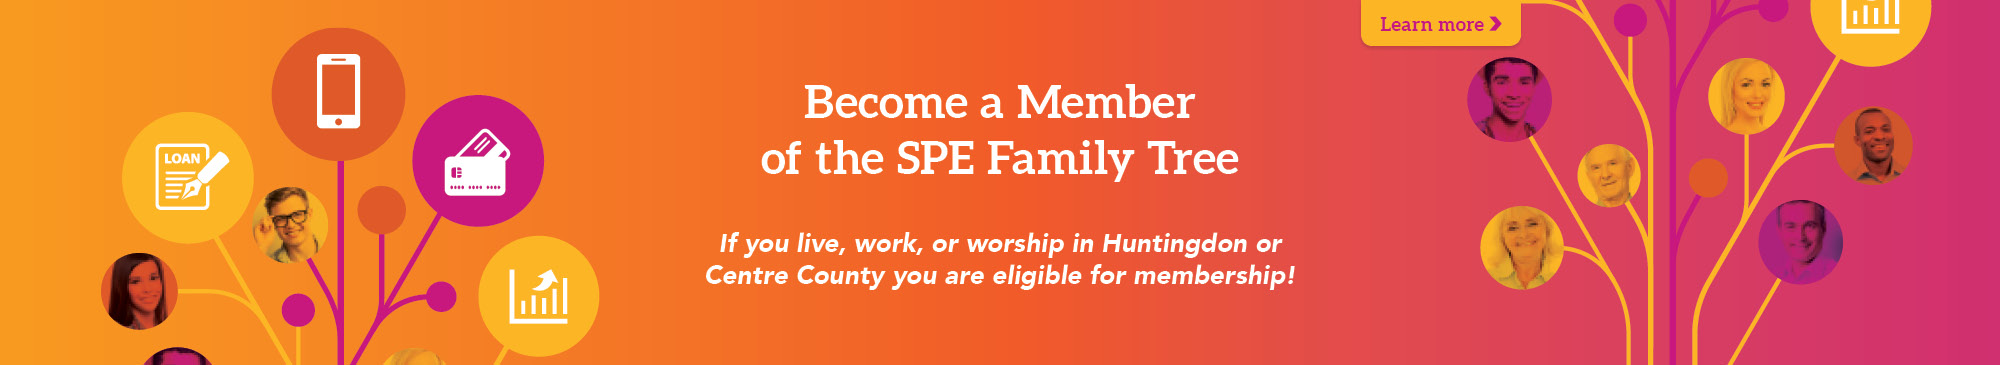 membership, family tree